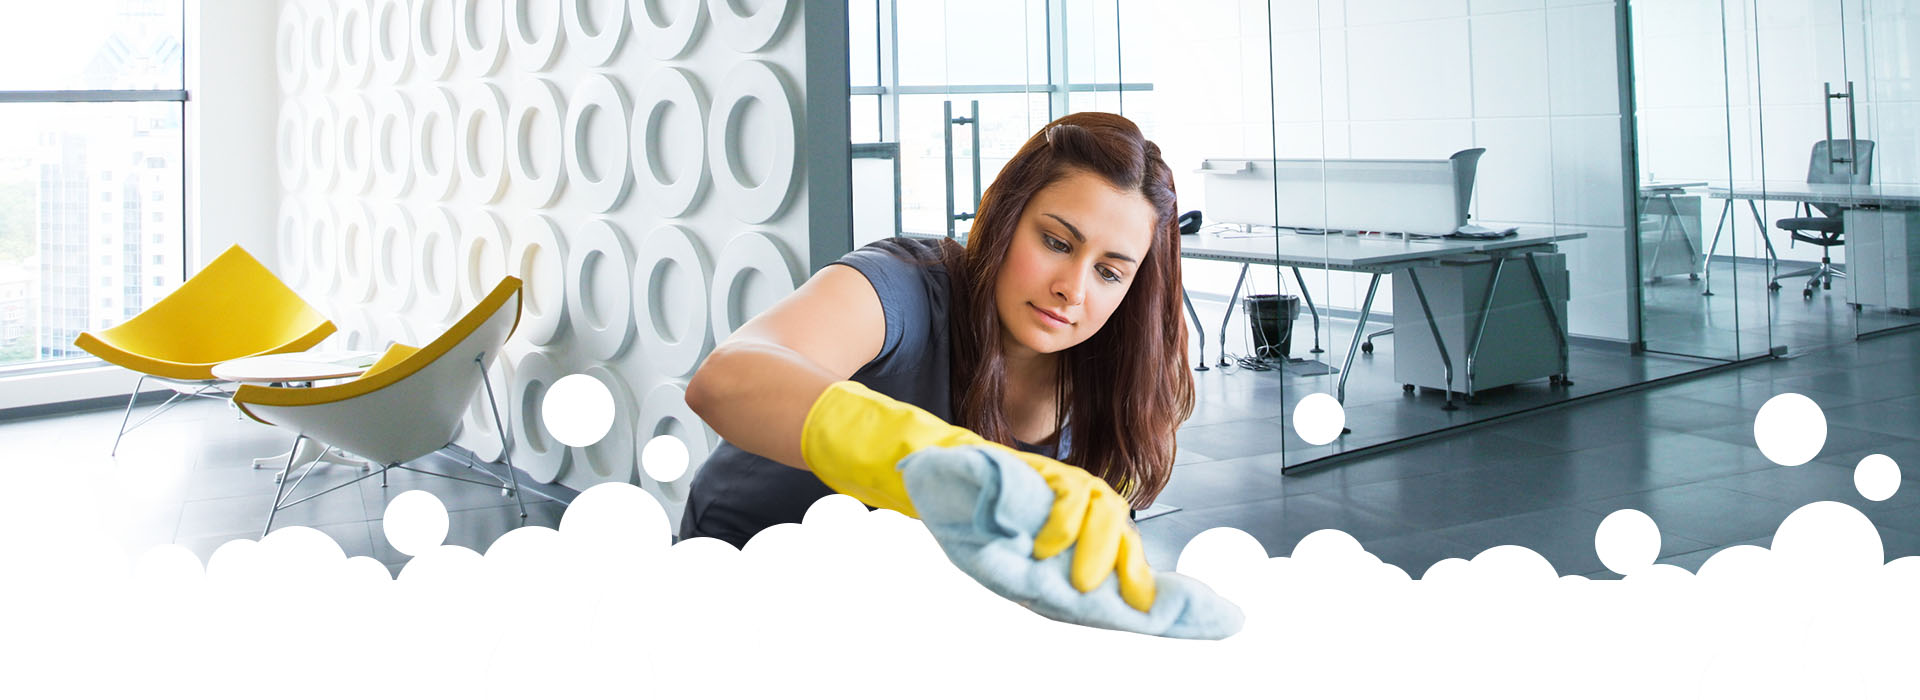 london-office-corporae-buro-company–cleaning-business-services